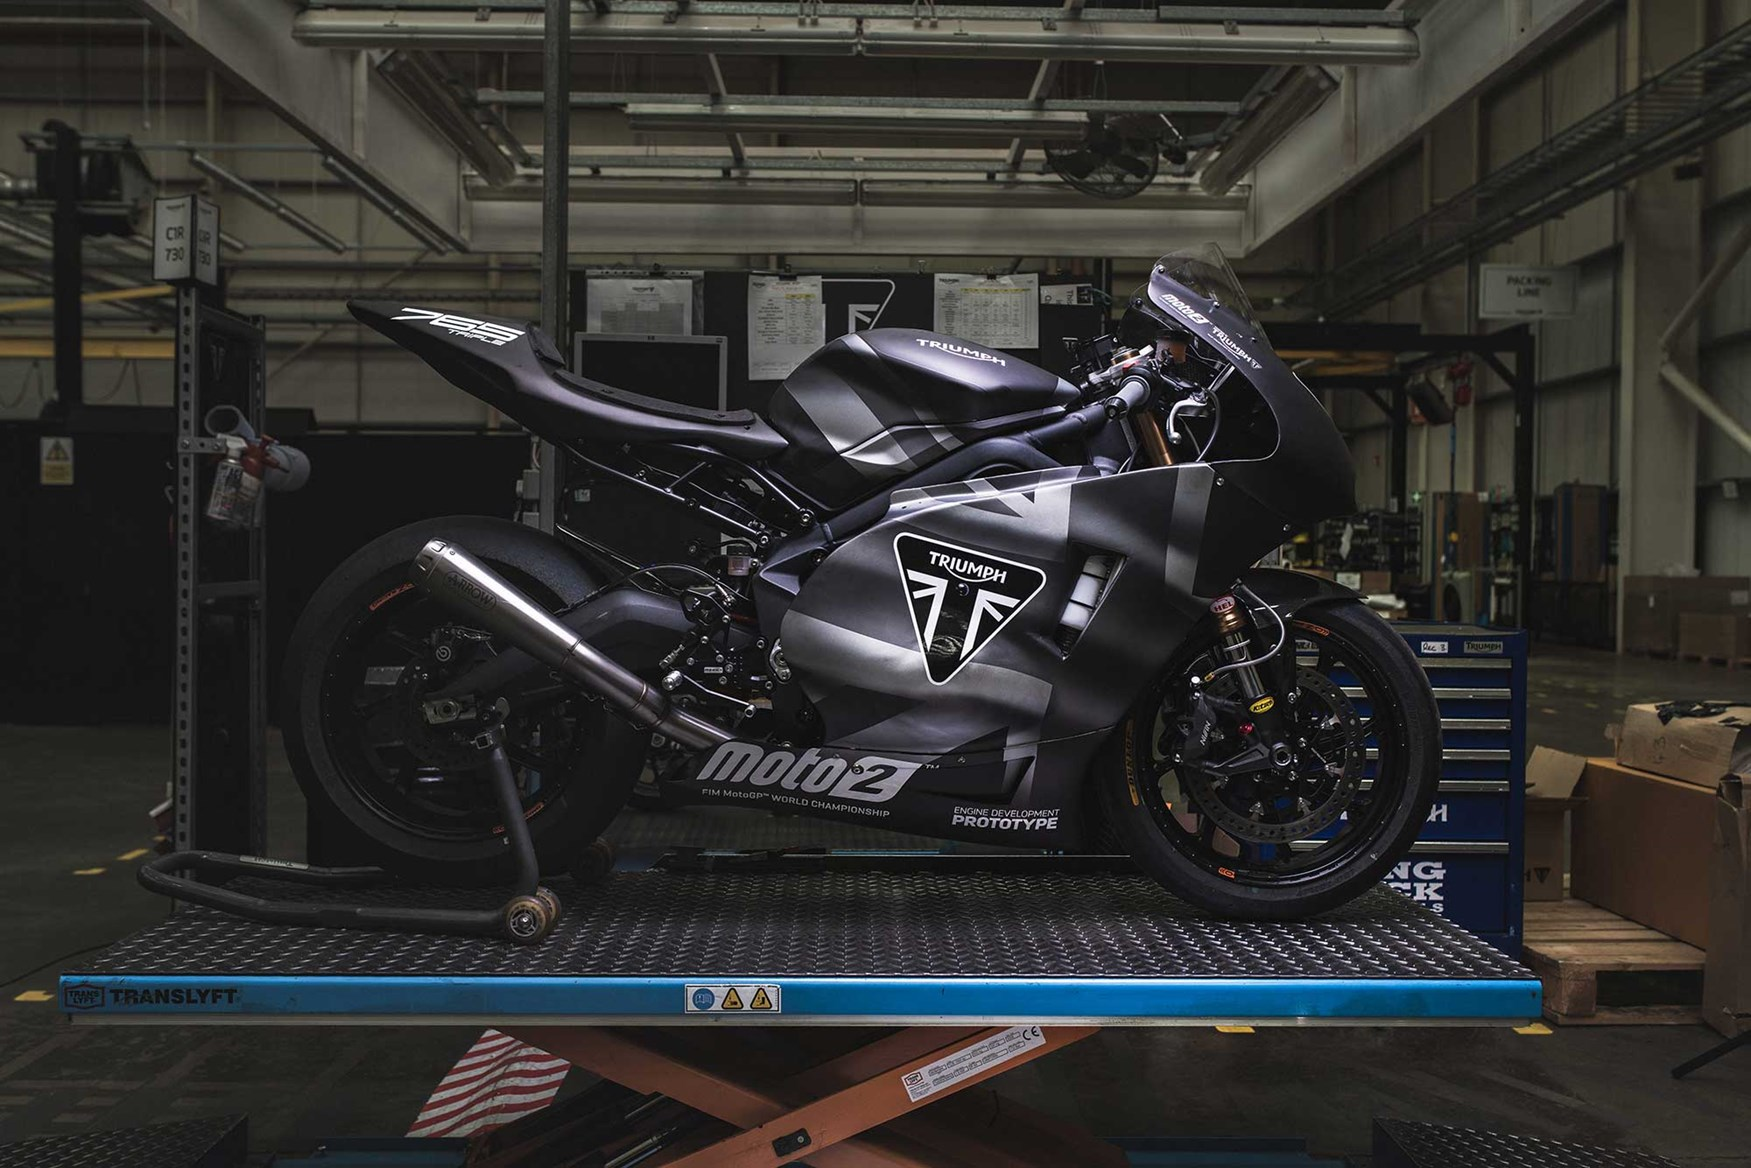 271b7519b8b ... The new Moto2 engine marks the return of Triumph to top-level racing ...